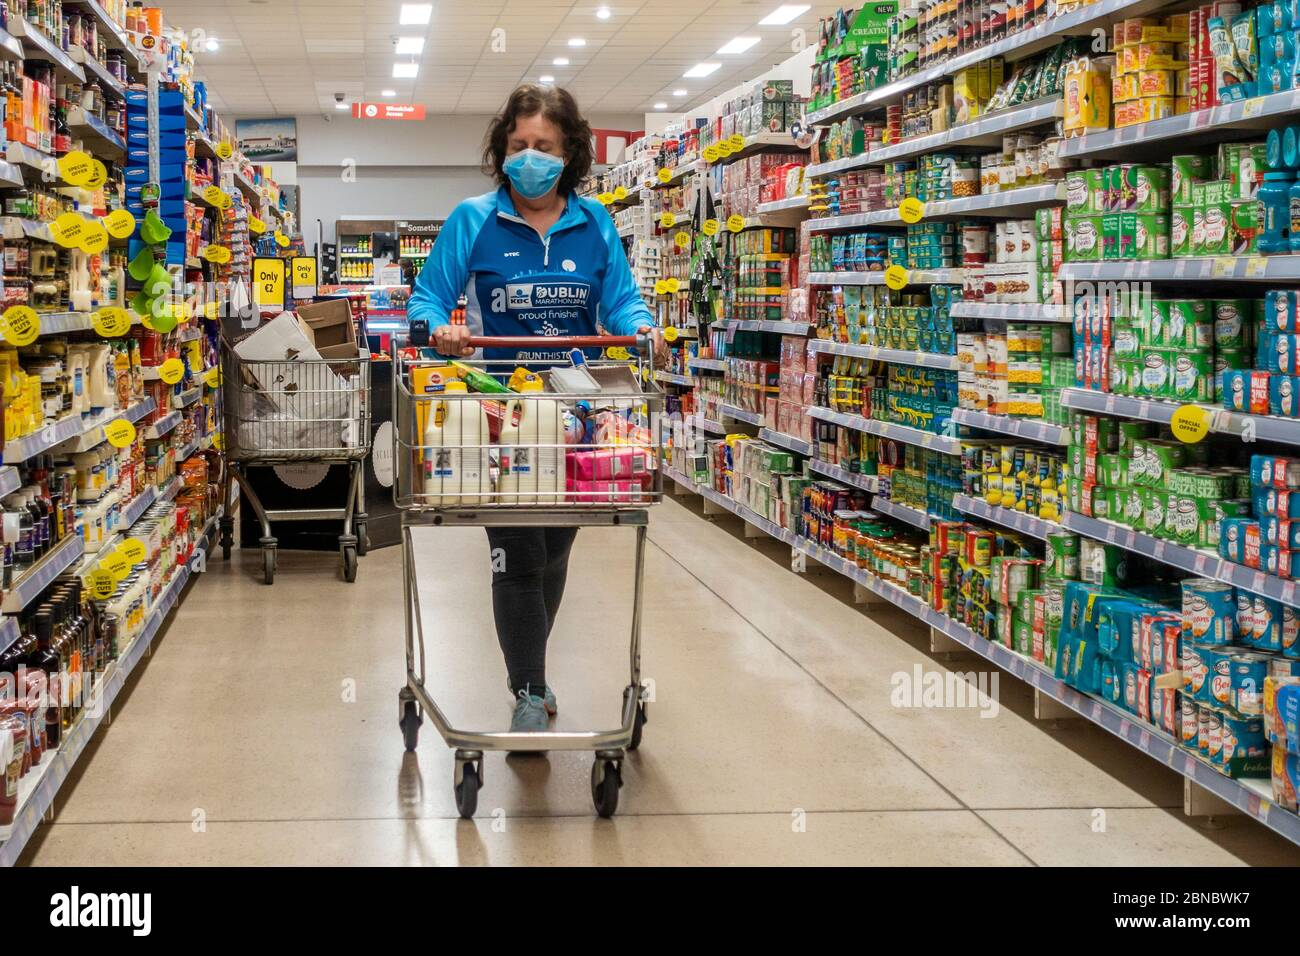 clonakilty-west-cork-ireland-14th-may-2020-a-woman-wears-a-face-mask-to-protect-herself-from-covid-19-as-she-shops-in-supervalu-clonakilty-credit-ag-newsalamy-live-news-2BNBWK7.jpg